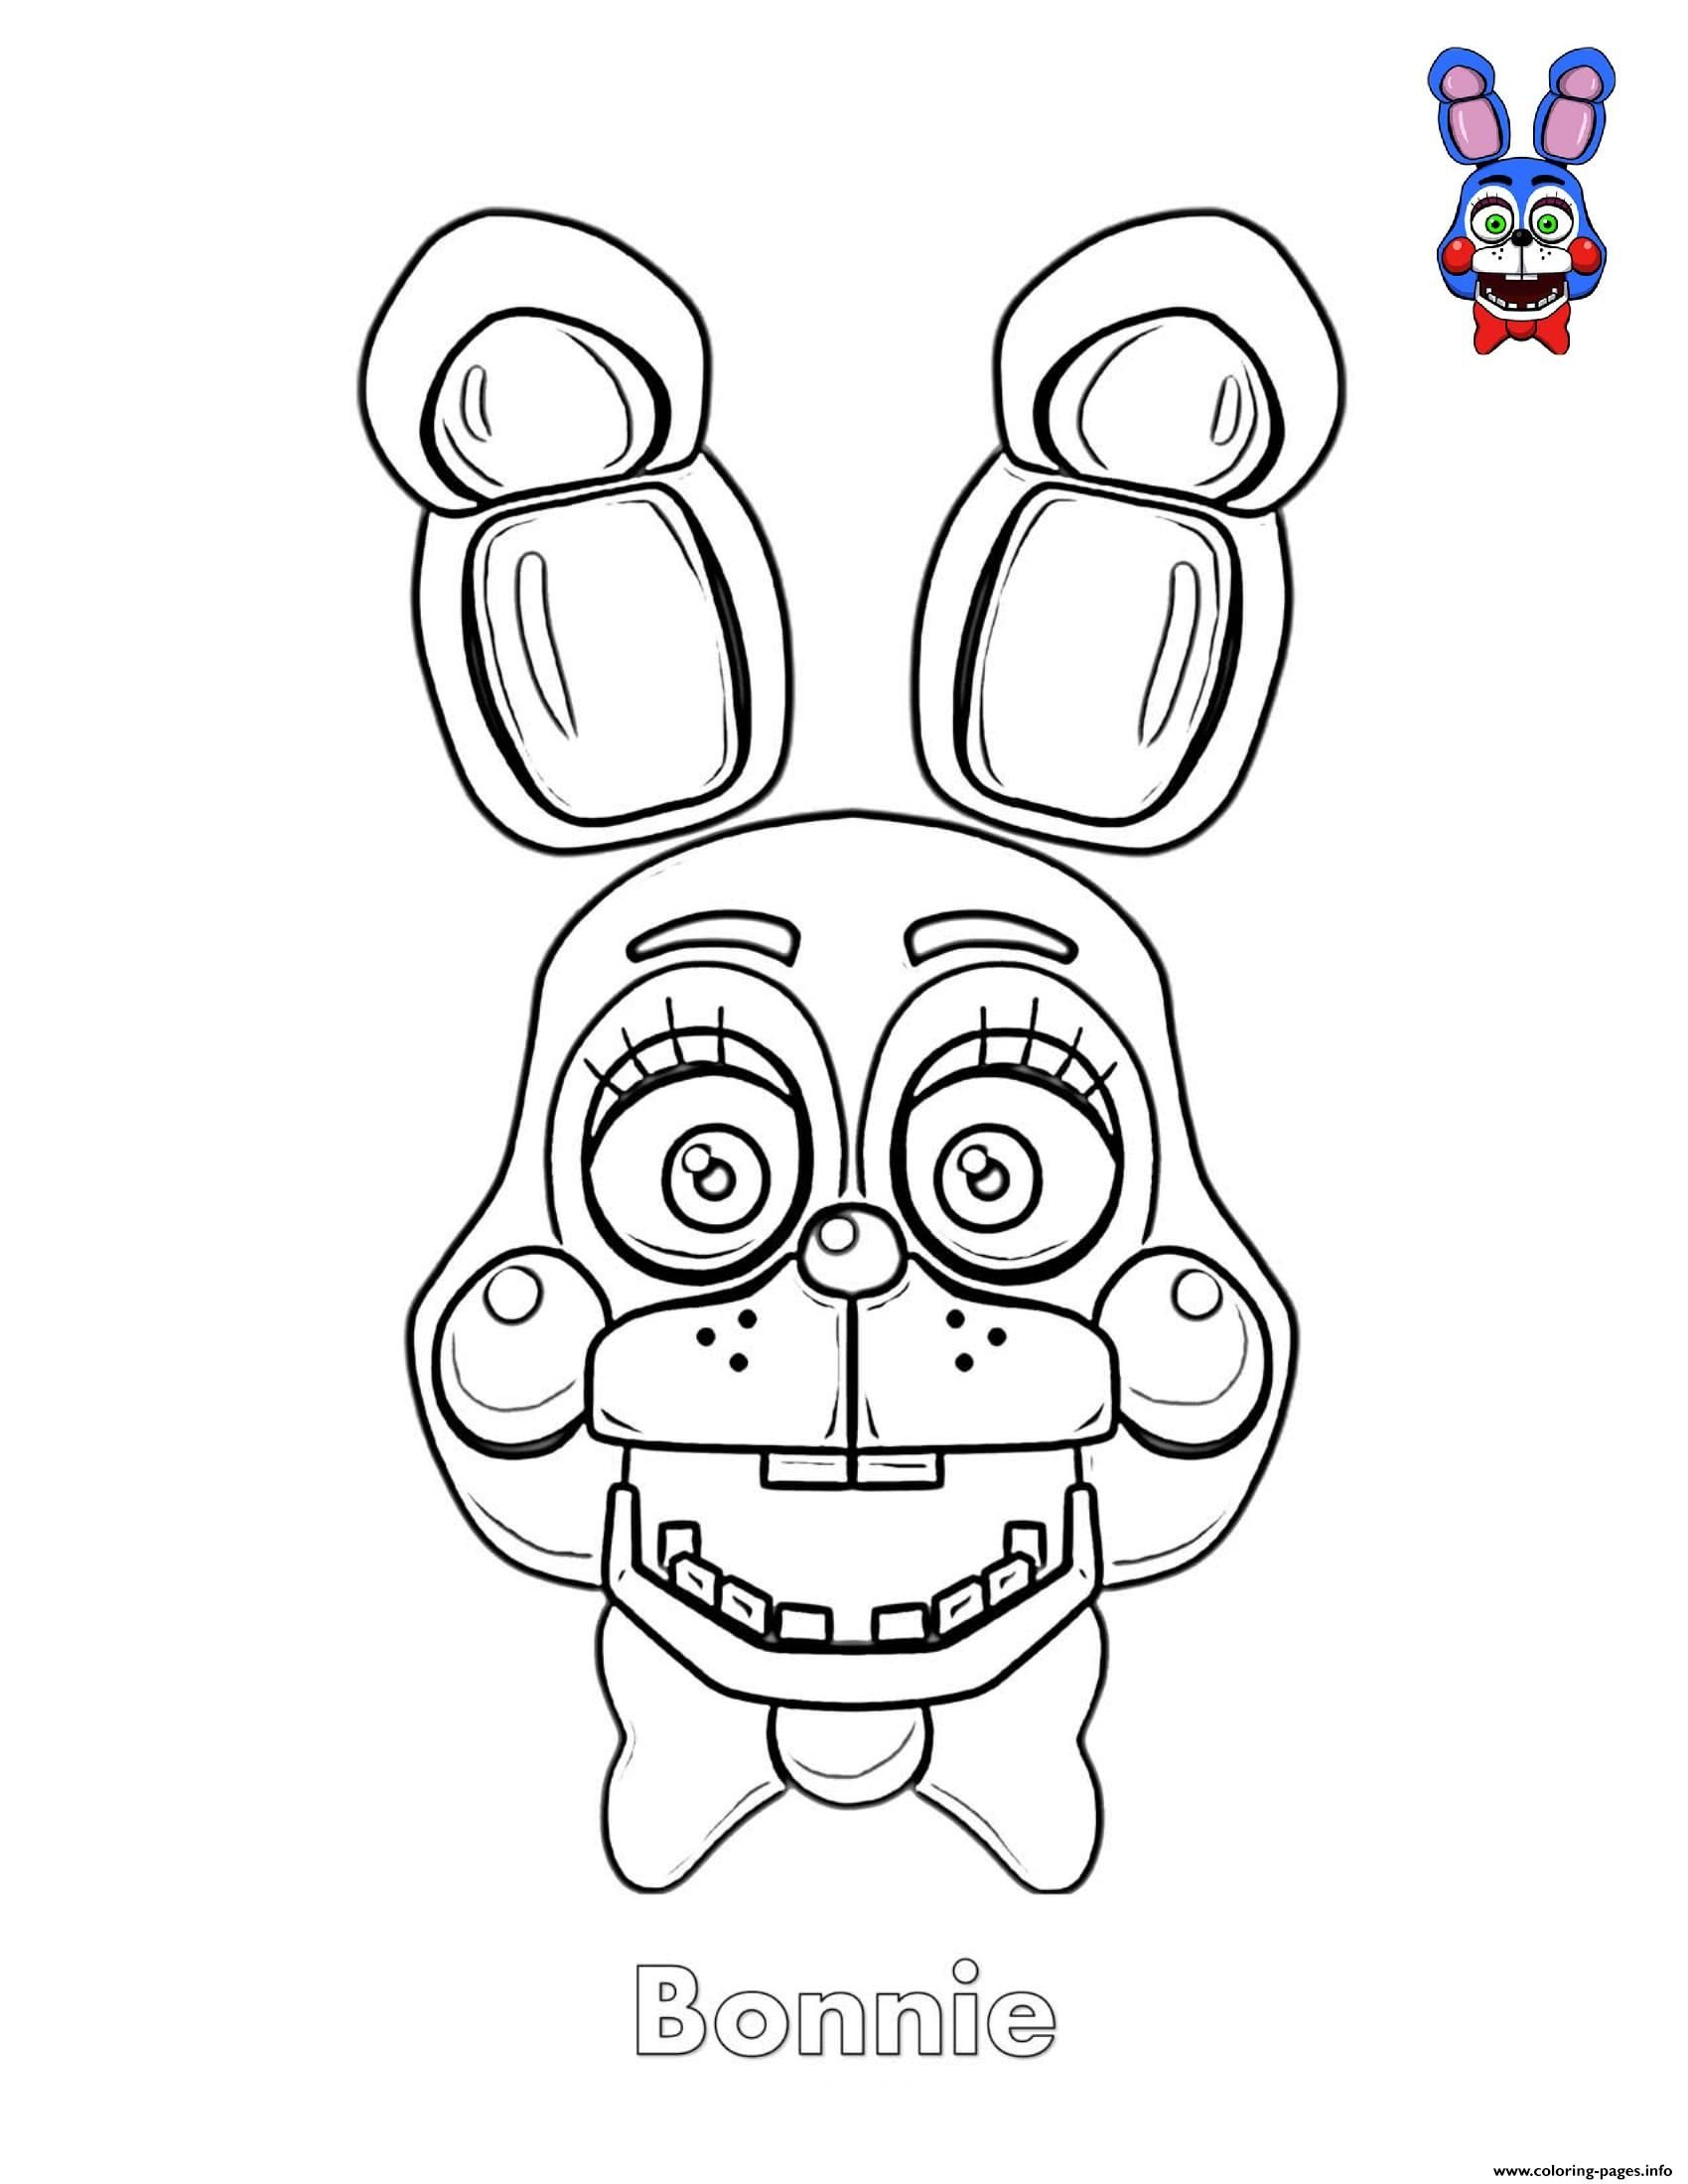 Fnaf Coloring Pages Withered Bonnie : coloring, pages, withered, bonnie, Print, Bonnie, Coloring, Pages, Pages,, Unicorn, Books